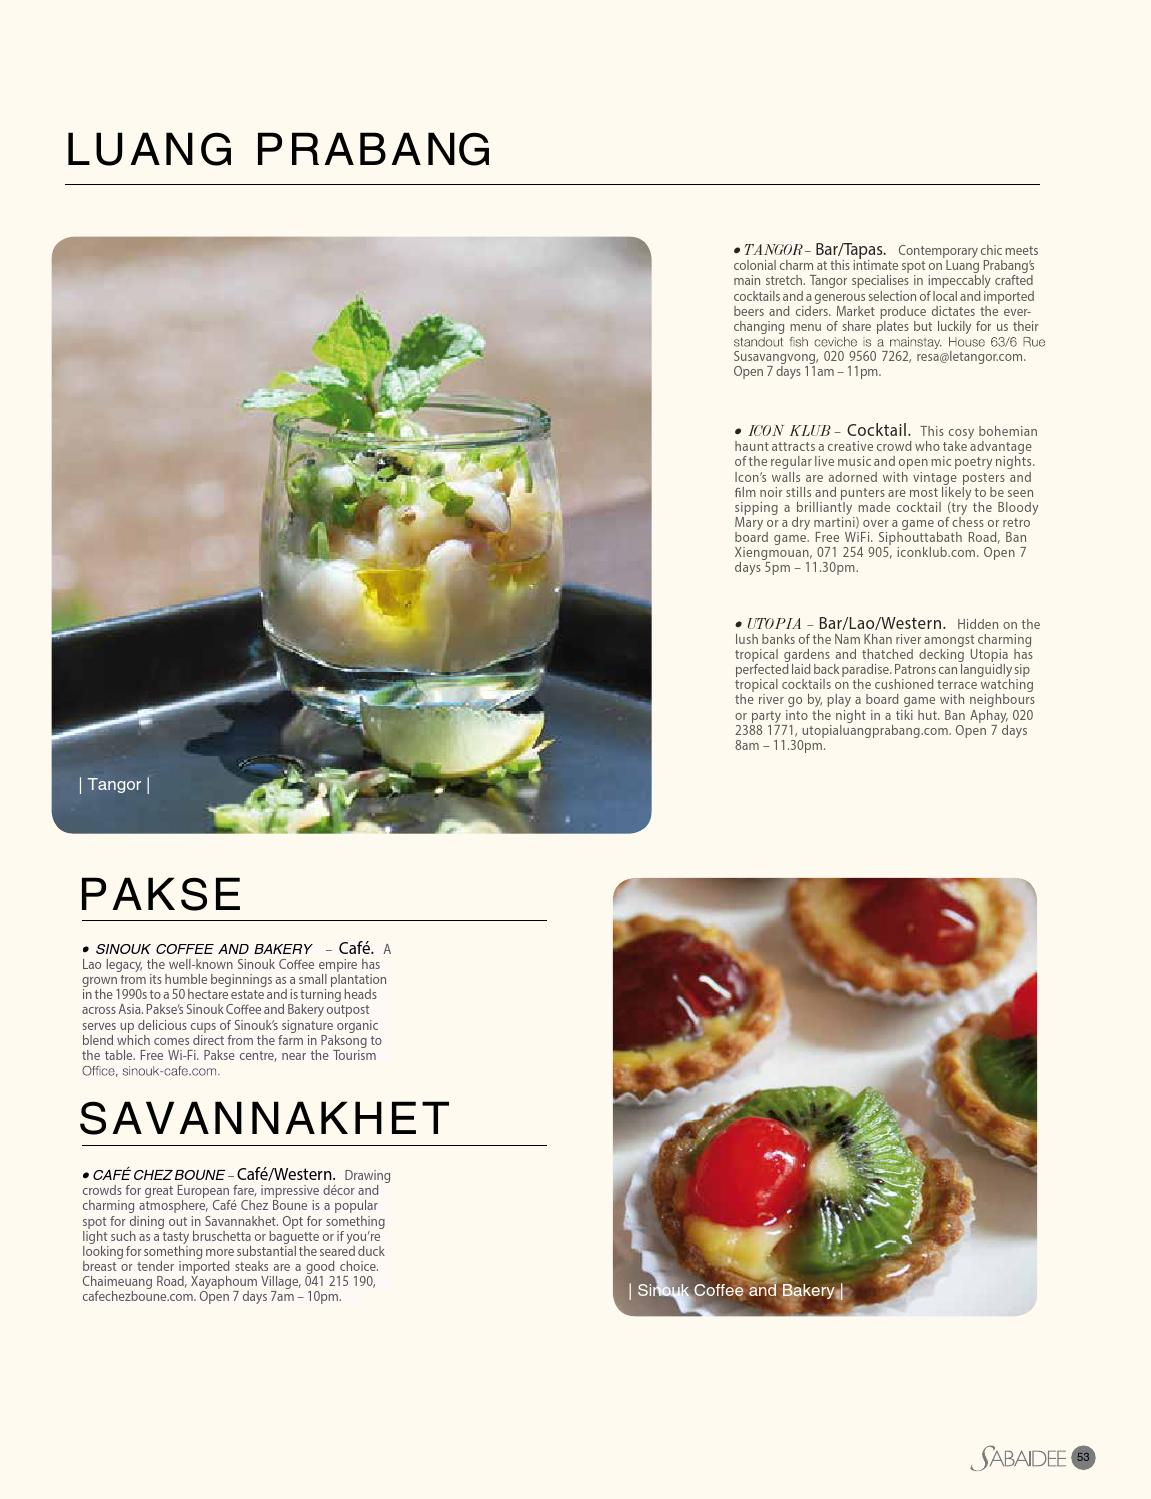 889306eba5 Sabaidee - Lao lifestyle & travel magazine issue 24 by Sabaidee Magazine -  issuu